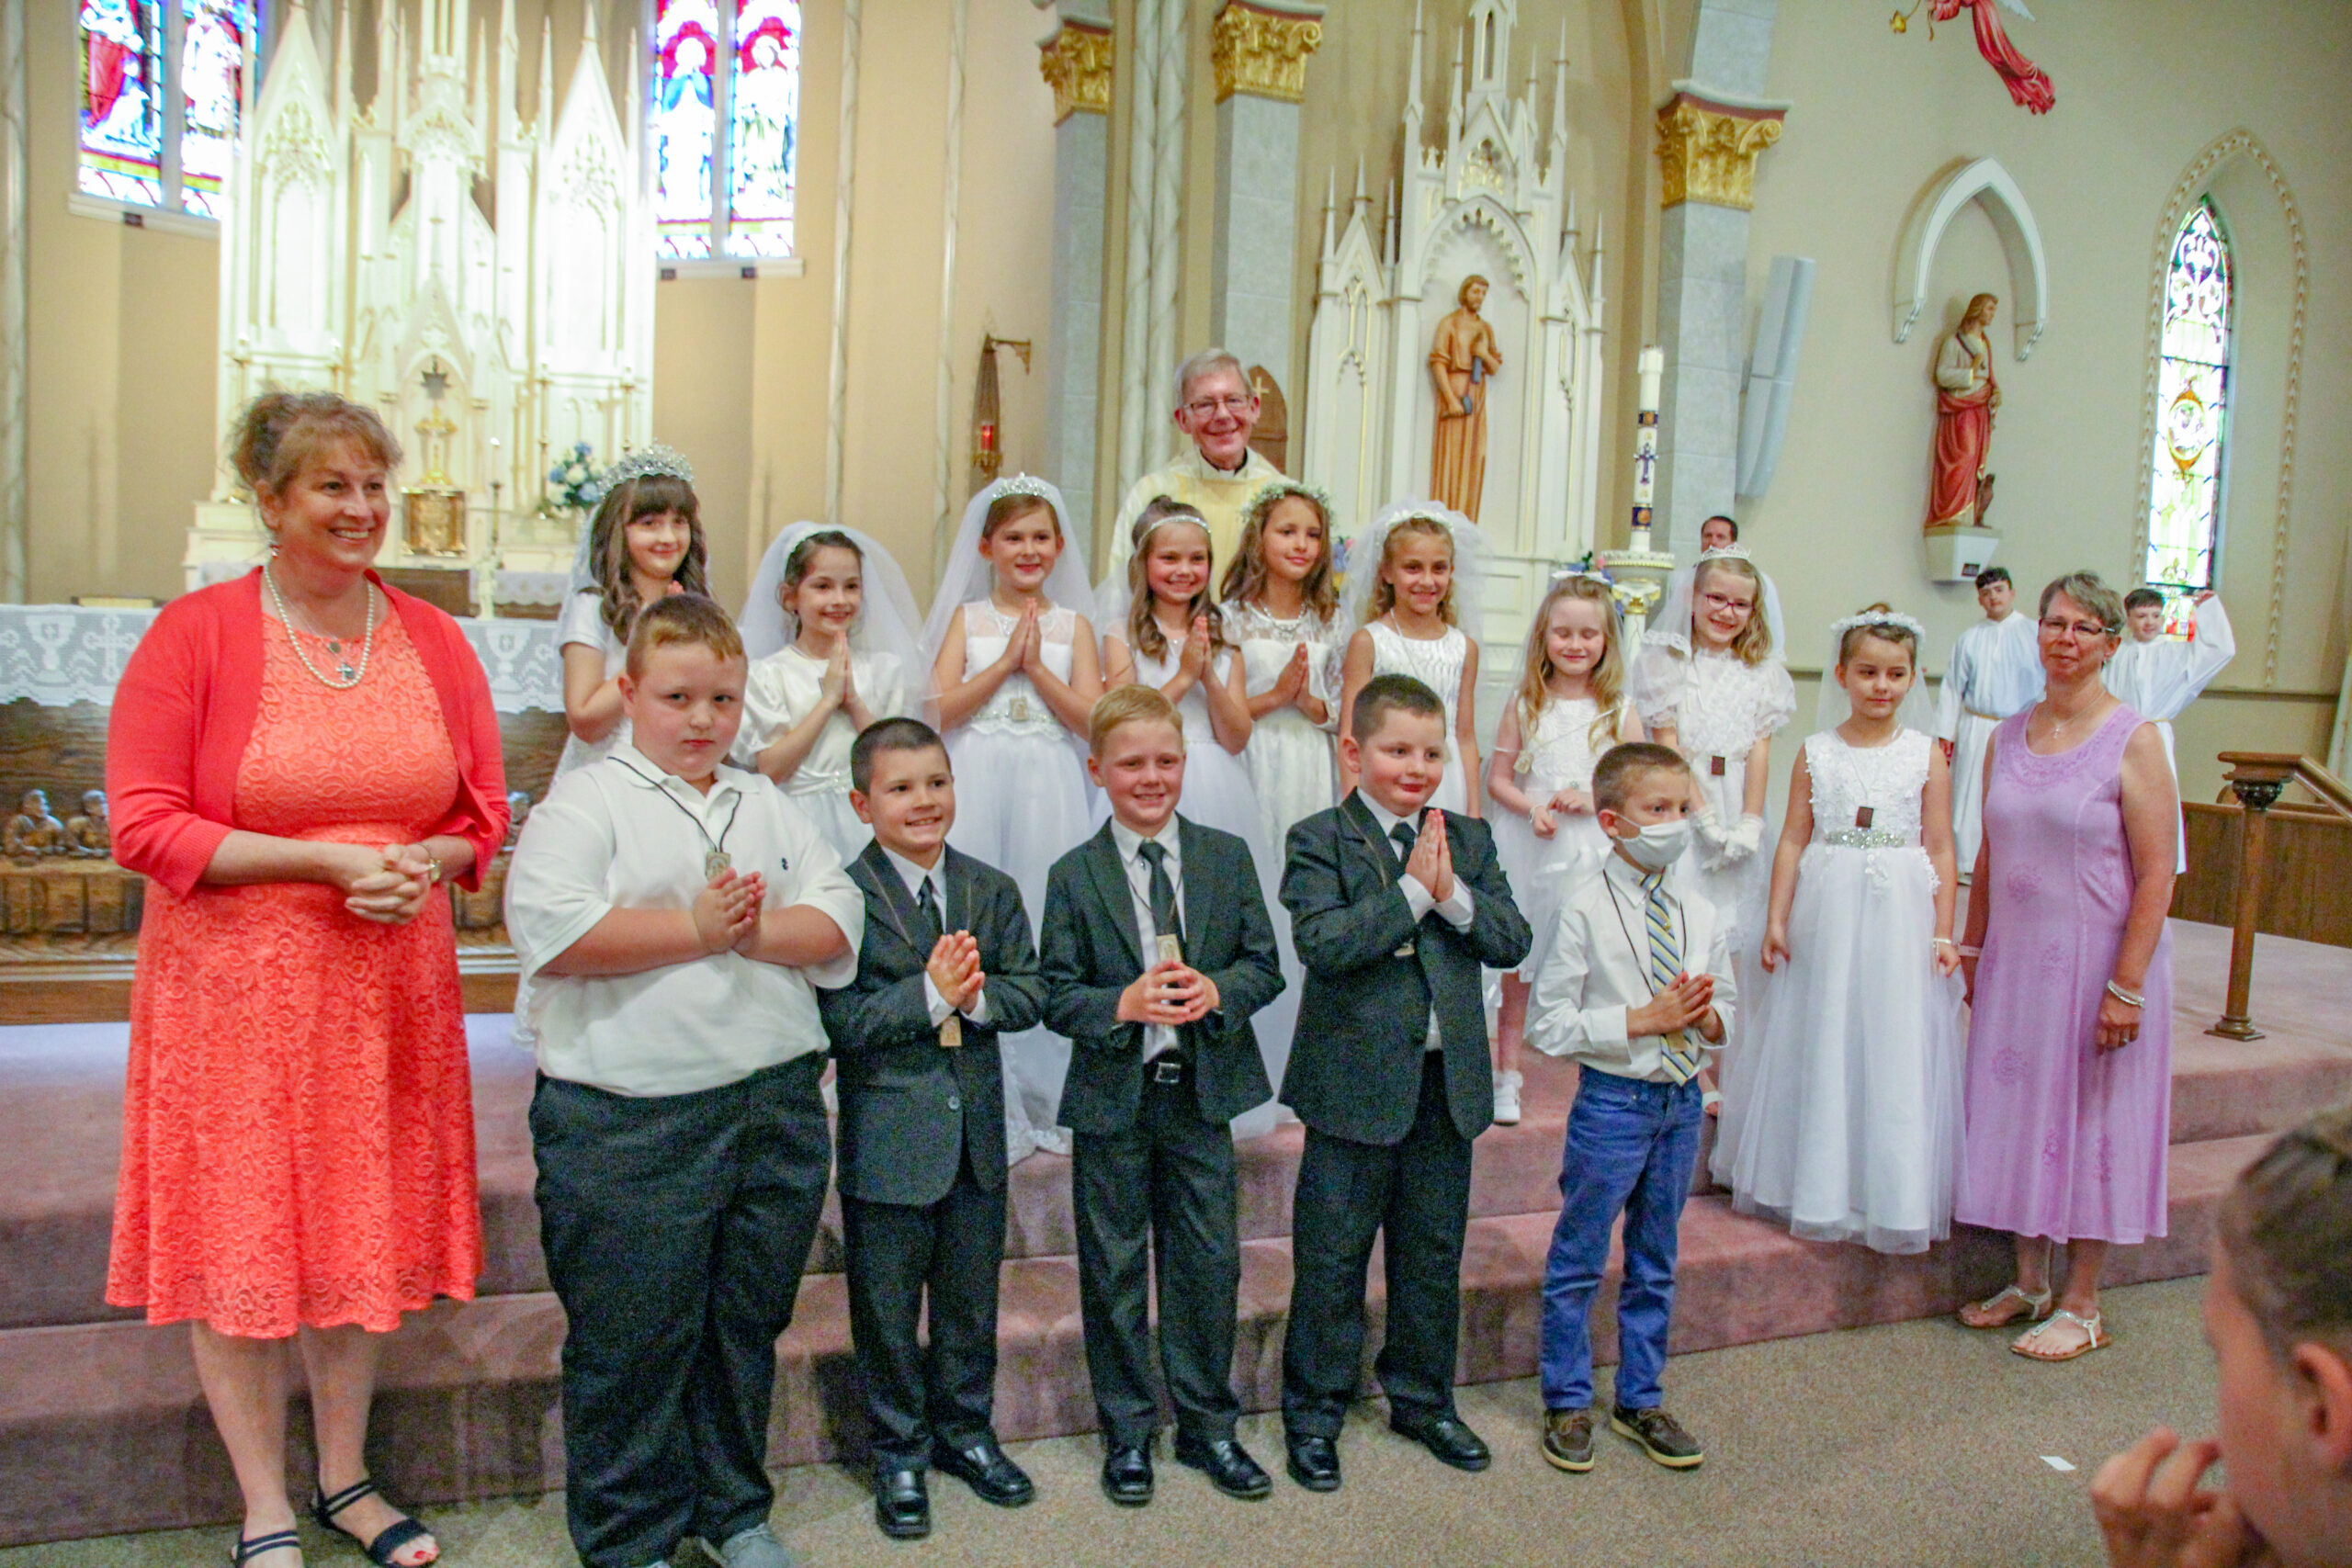 St. John the Evangelist Parish in Loogootee celebrated First Communion for 14 second-graders during the 6 p.m. Mass on June 5. Shown are Catechist Kim Bowling, front row left, Wade George Curtis Sheetz, Holden O'Neil Lingenfelter, Liam Marshall Kluesner, Ashton Thomas Summers, Isaac Alan Lagree, Catechist Paula Ringwald, Mary-Grace Catherine Todd, second row left, Skylyr Vera Ann Raney, Landry Deane Louise Strange, Fara Kate Fisher, Kensleigh Izabelle Carrico, Brylee Korynn Bateman, Olivia Jean Padgett, Clare Isabel Ringwald and Eva Grace Ringwald, St. John the Evangelist Pastor Father Kenneth Walker is standing behind the group. Student Lucy Rahman was unable to attend. She will make her First Communion at a later date. Submitted photo